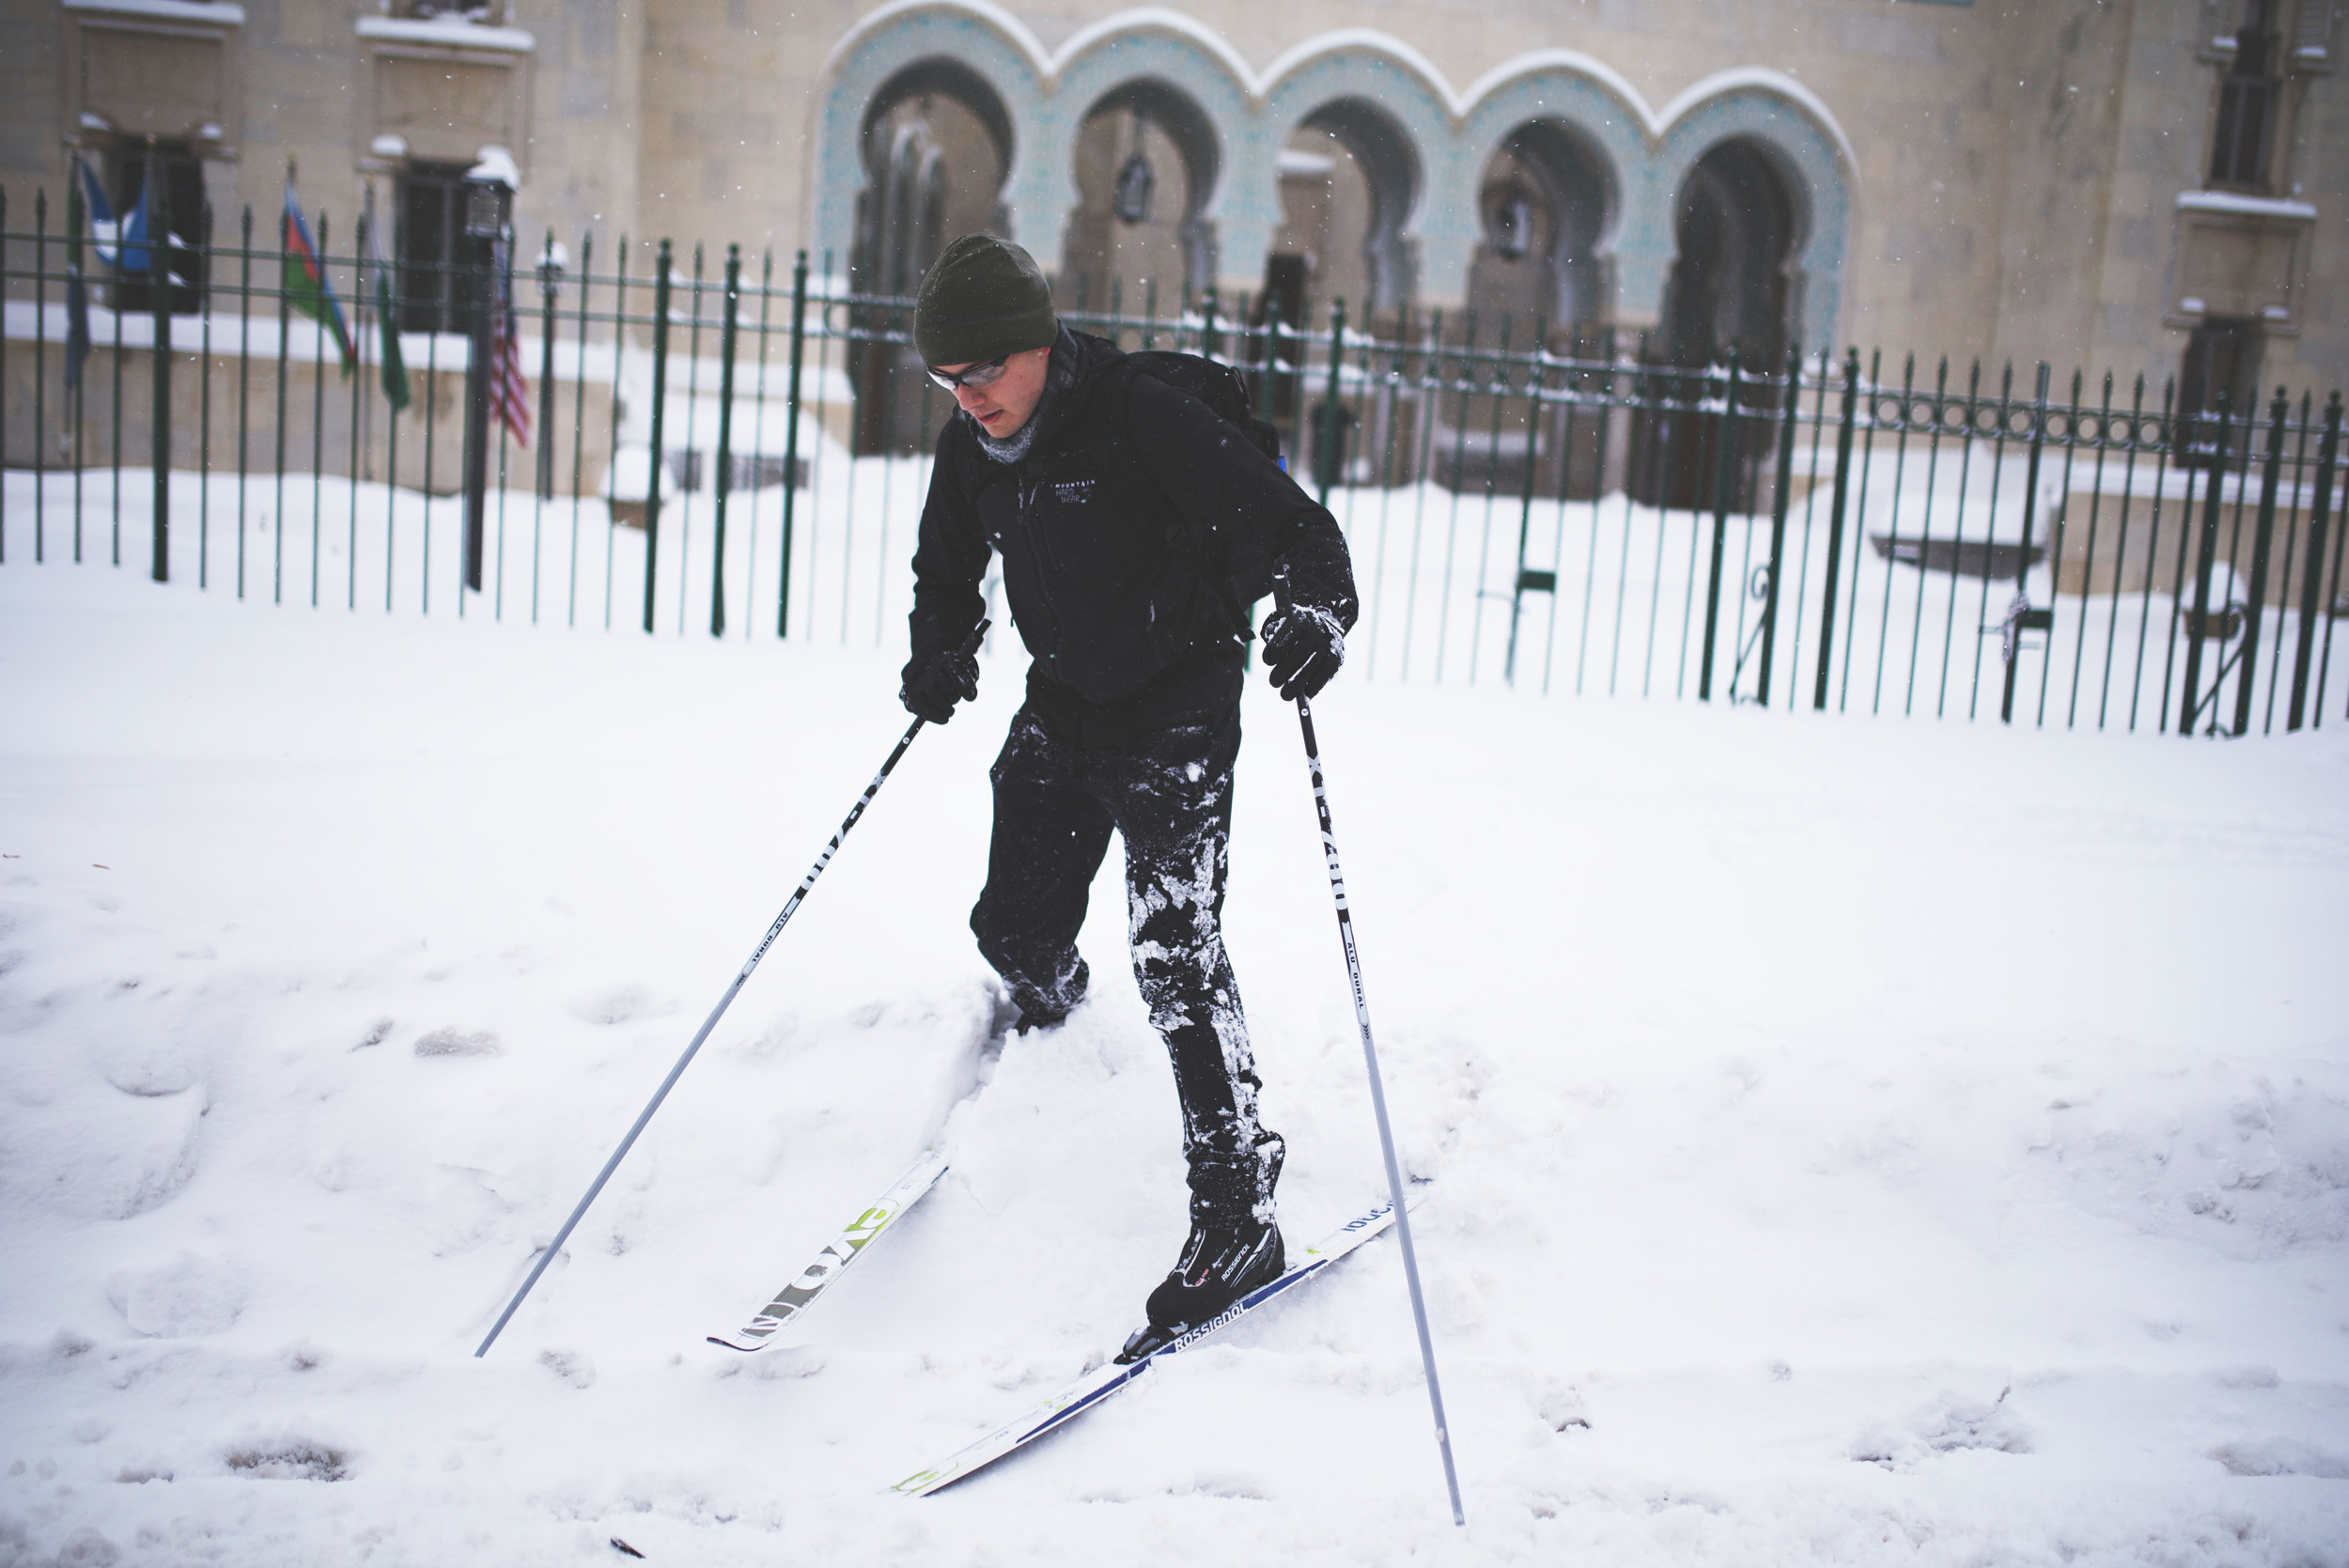 Oooo and of course all the awesome cross-country skiers.. they knew how to get around the right way